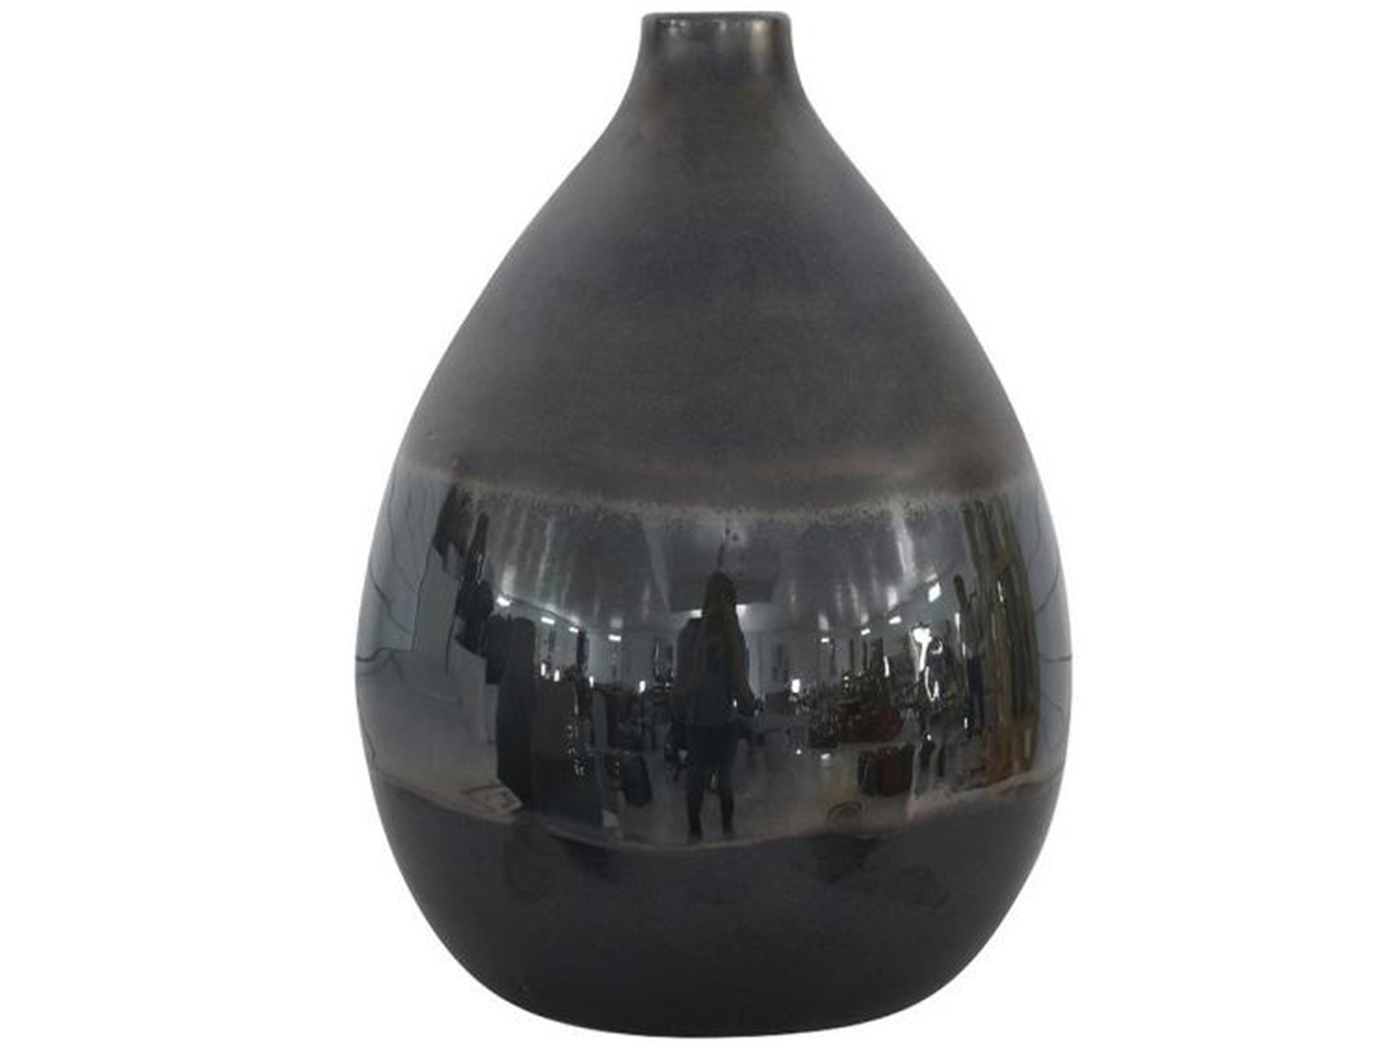 "Small Charcoal Ceramic Vase 9""W x 11.75""H"